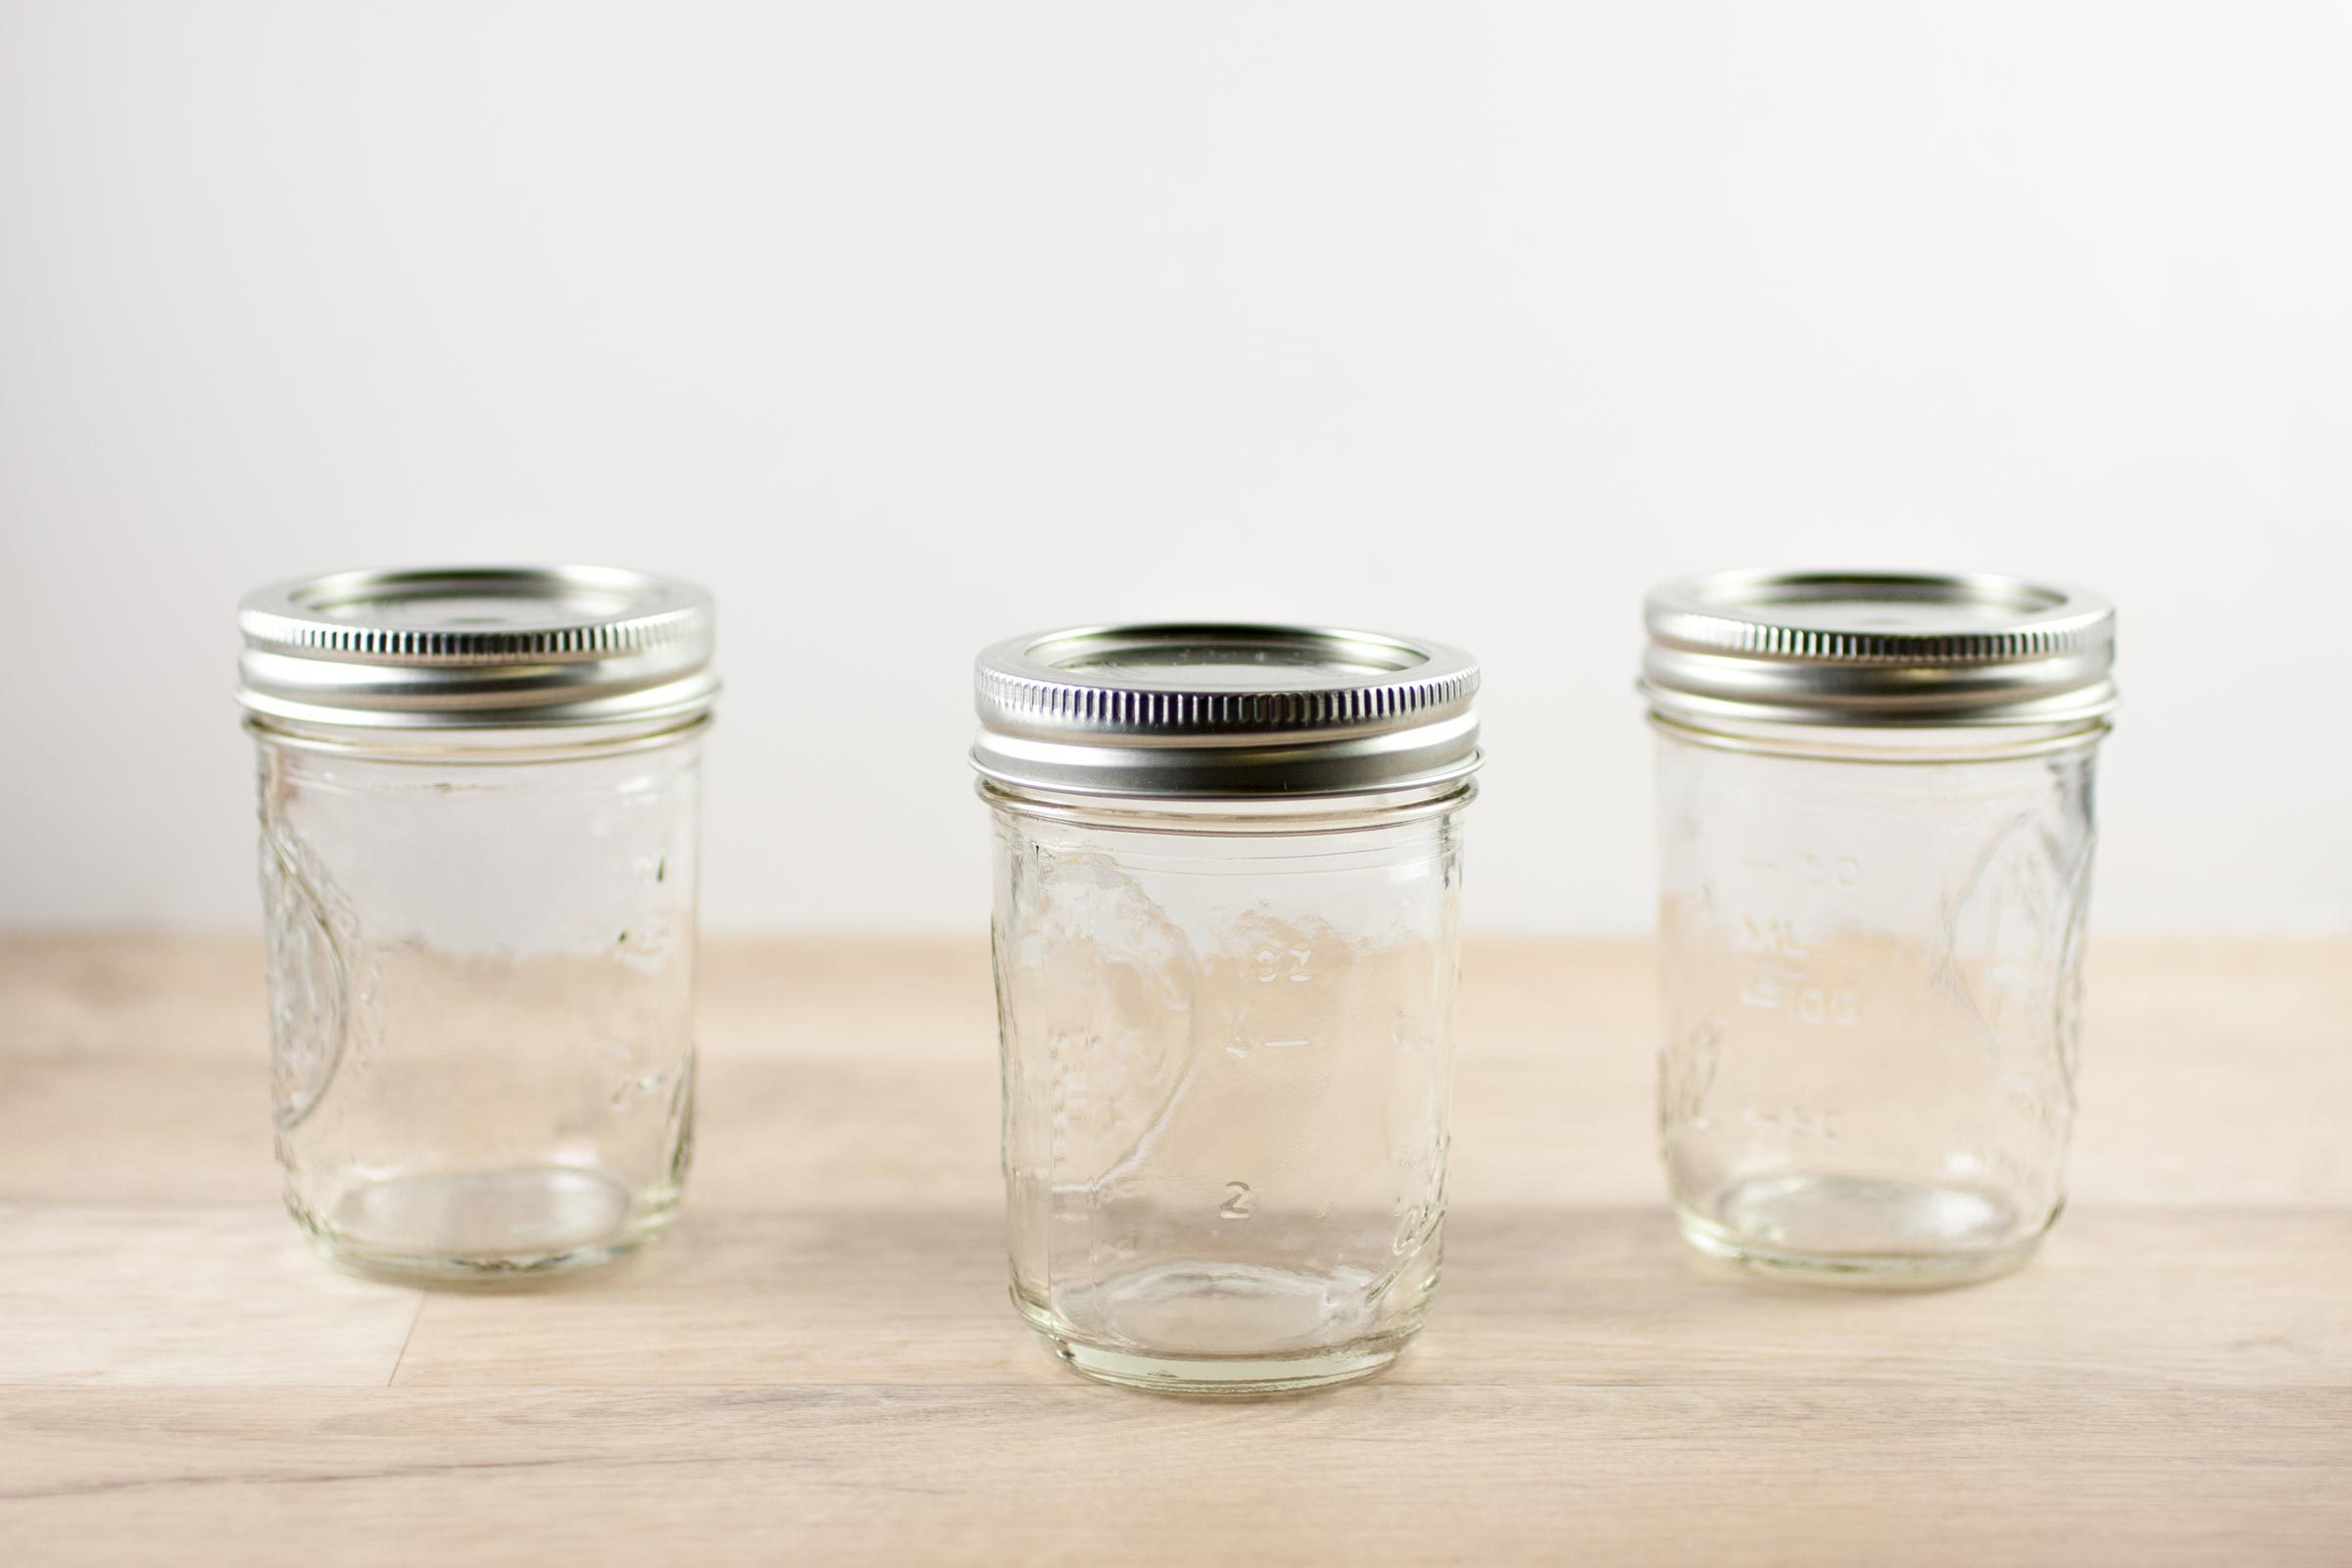 Empty canning jars sit on a wooden table.